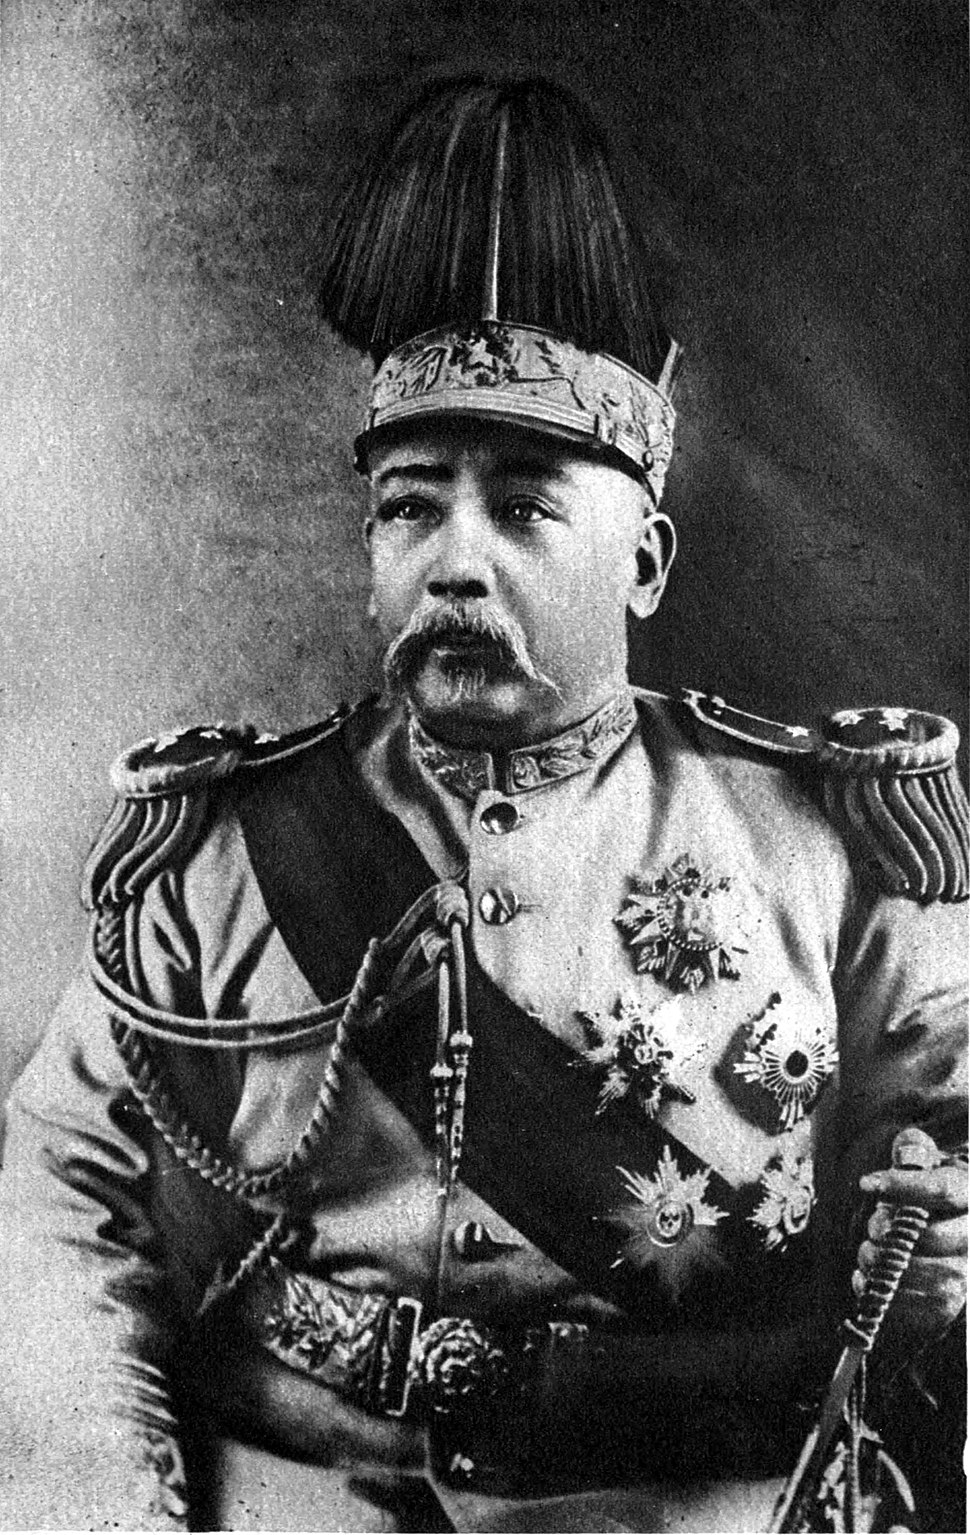 A Chinese man wearing an elaborate military outfit, with a large crown on his head.